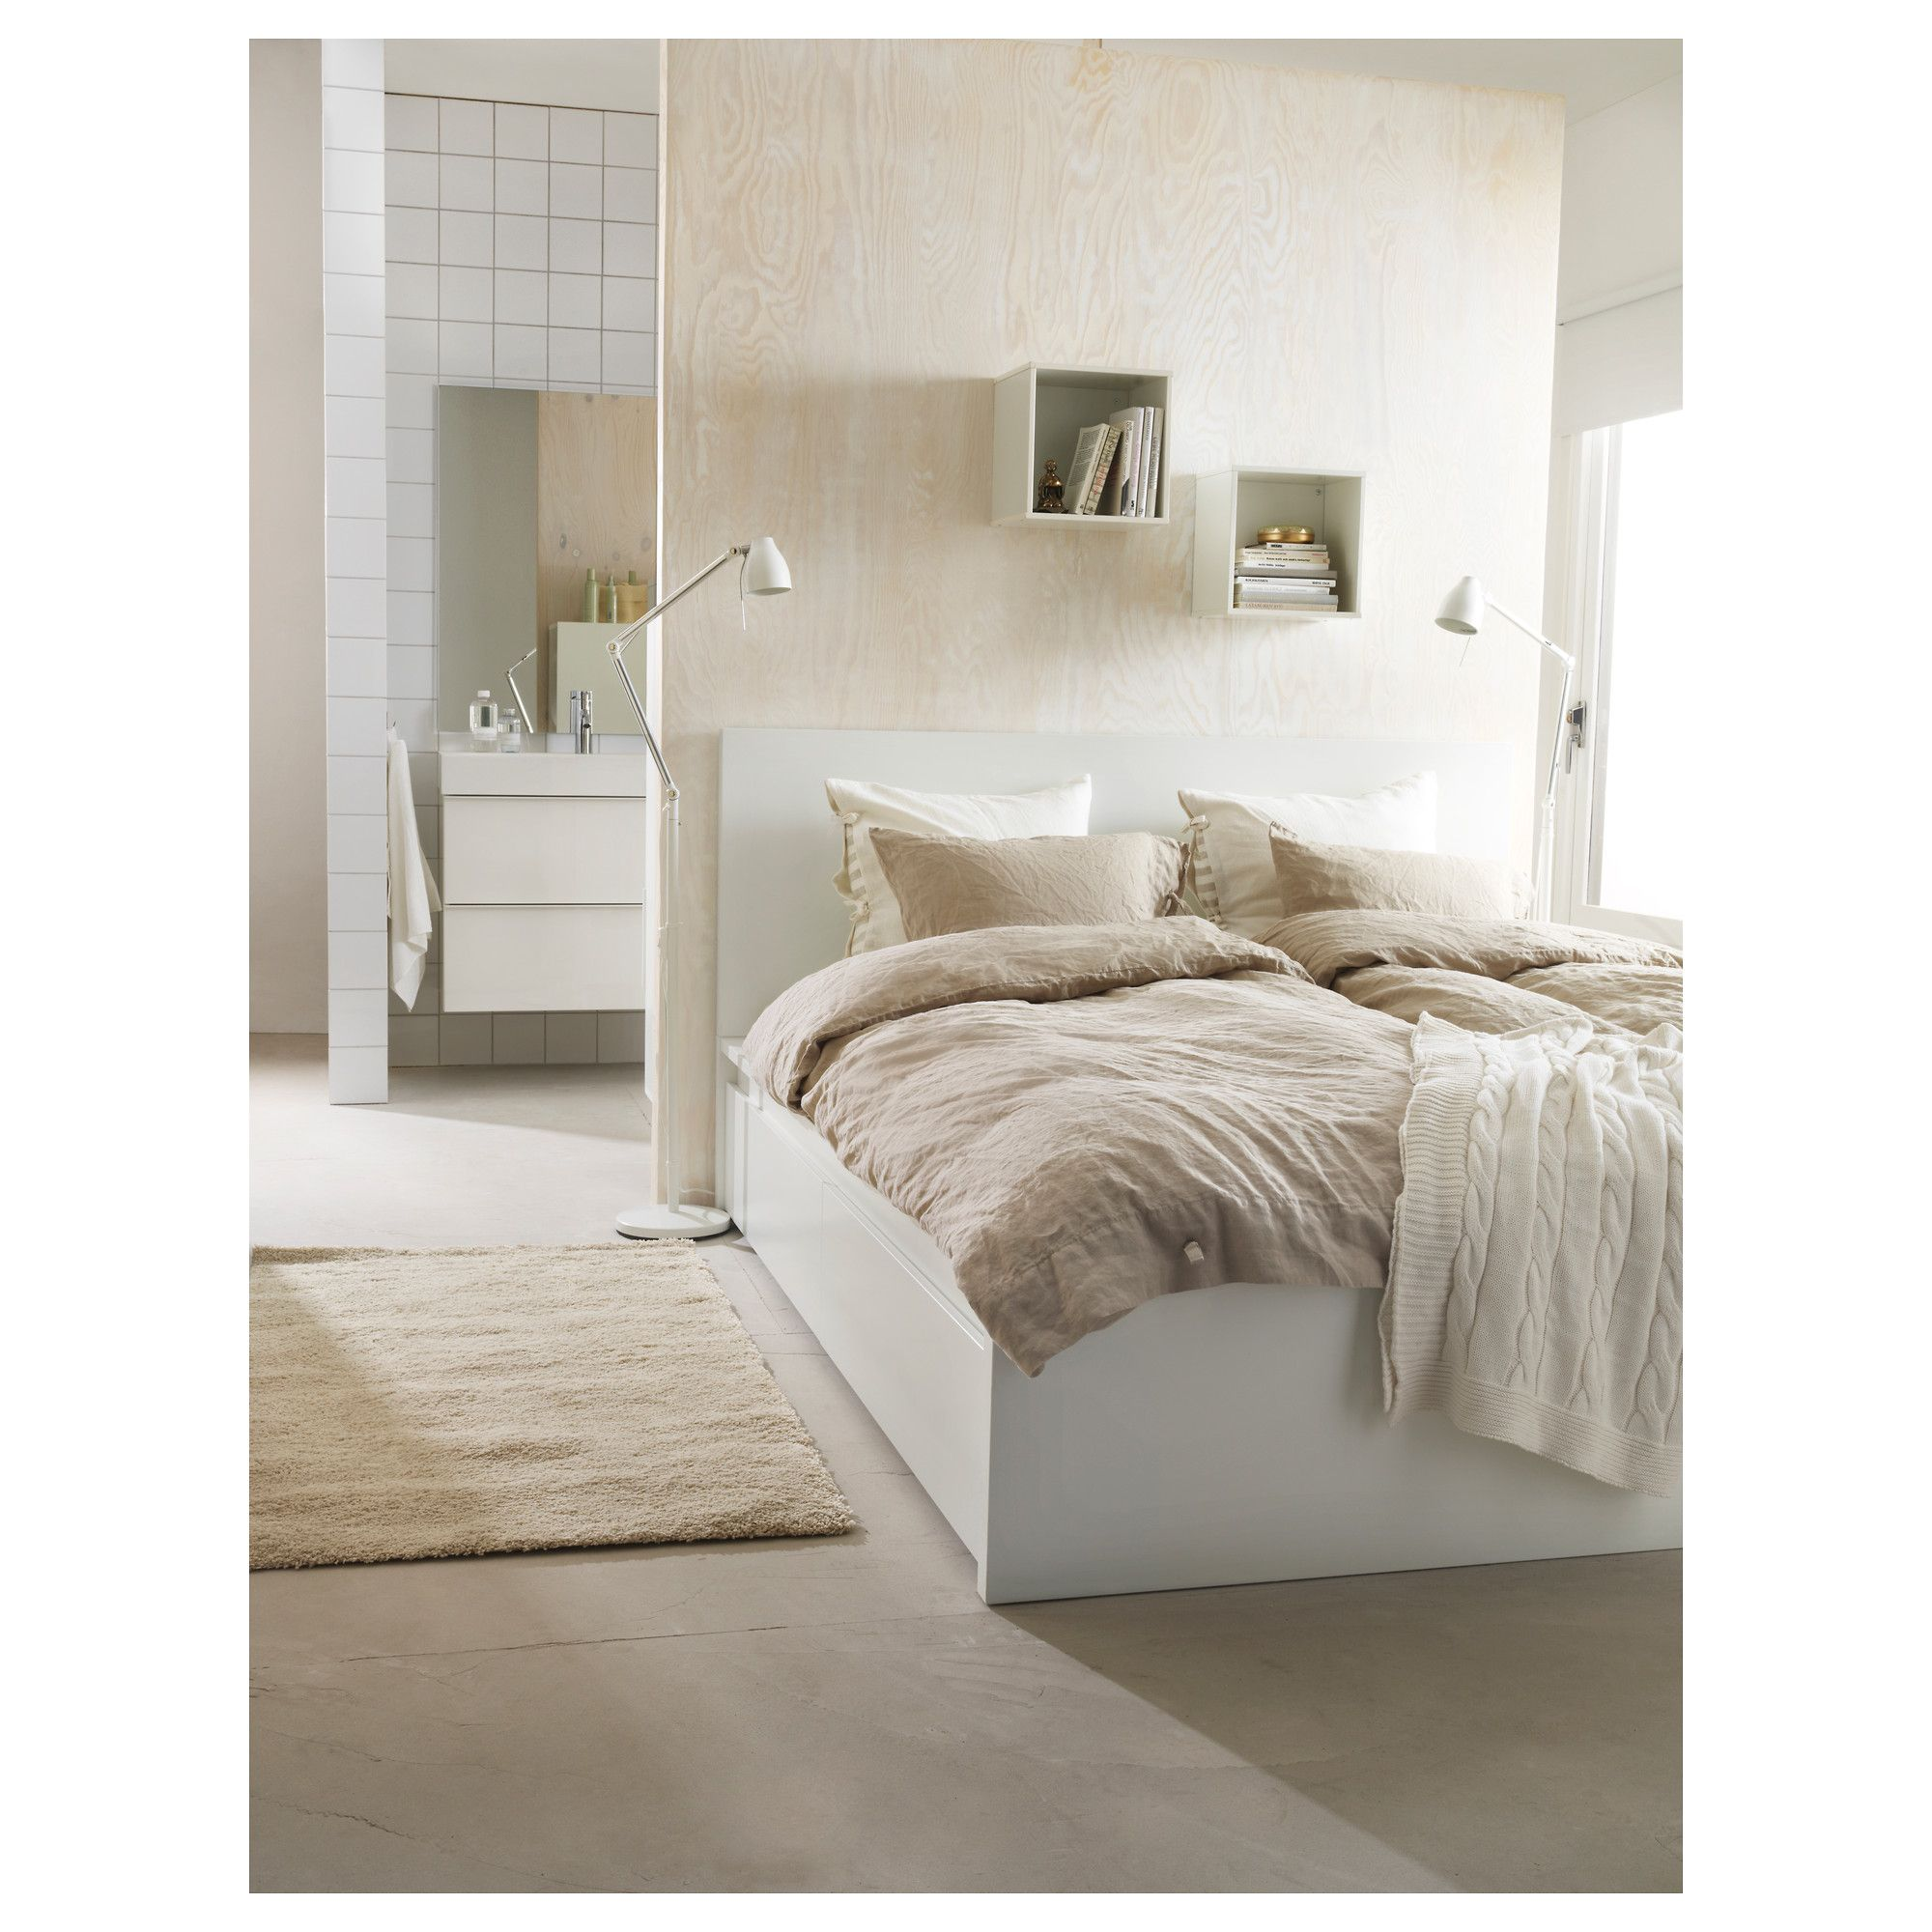 Malm High Bed Frame 4 Storage Boxes White Luroy Queen High Bed Frame Ikea Malm Bed Malm Bed Frame